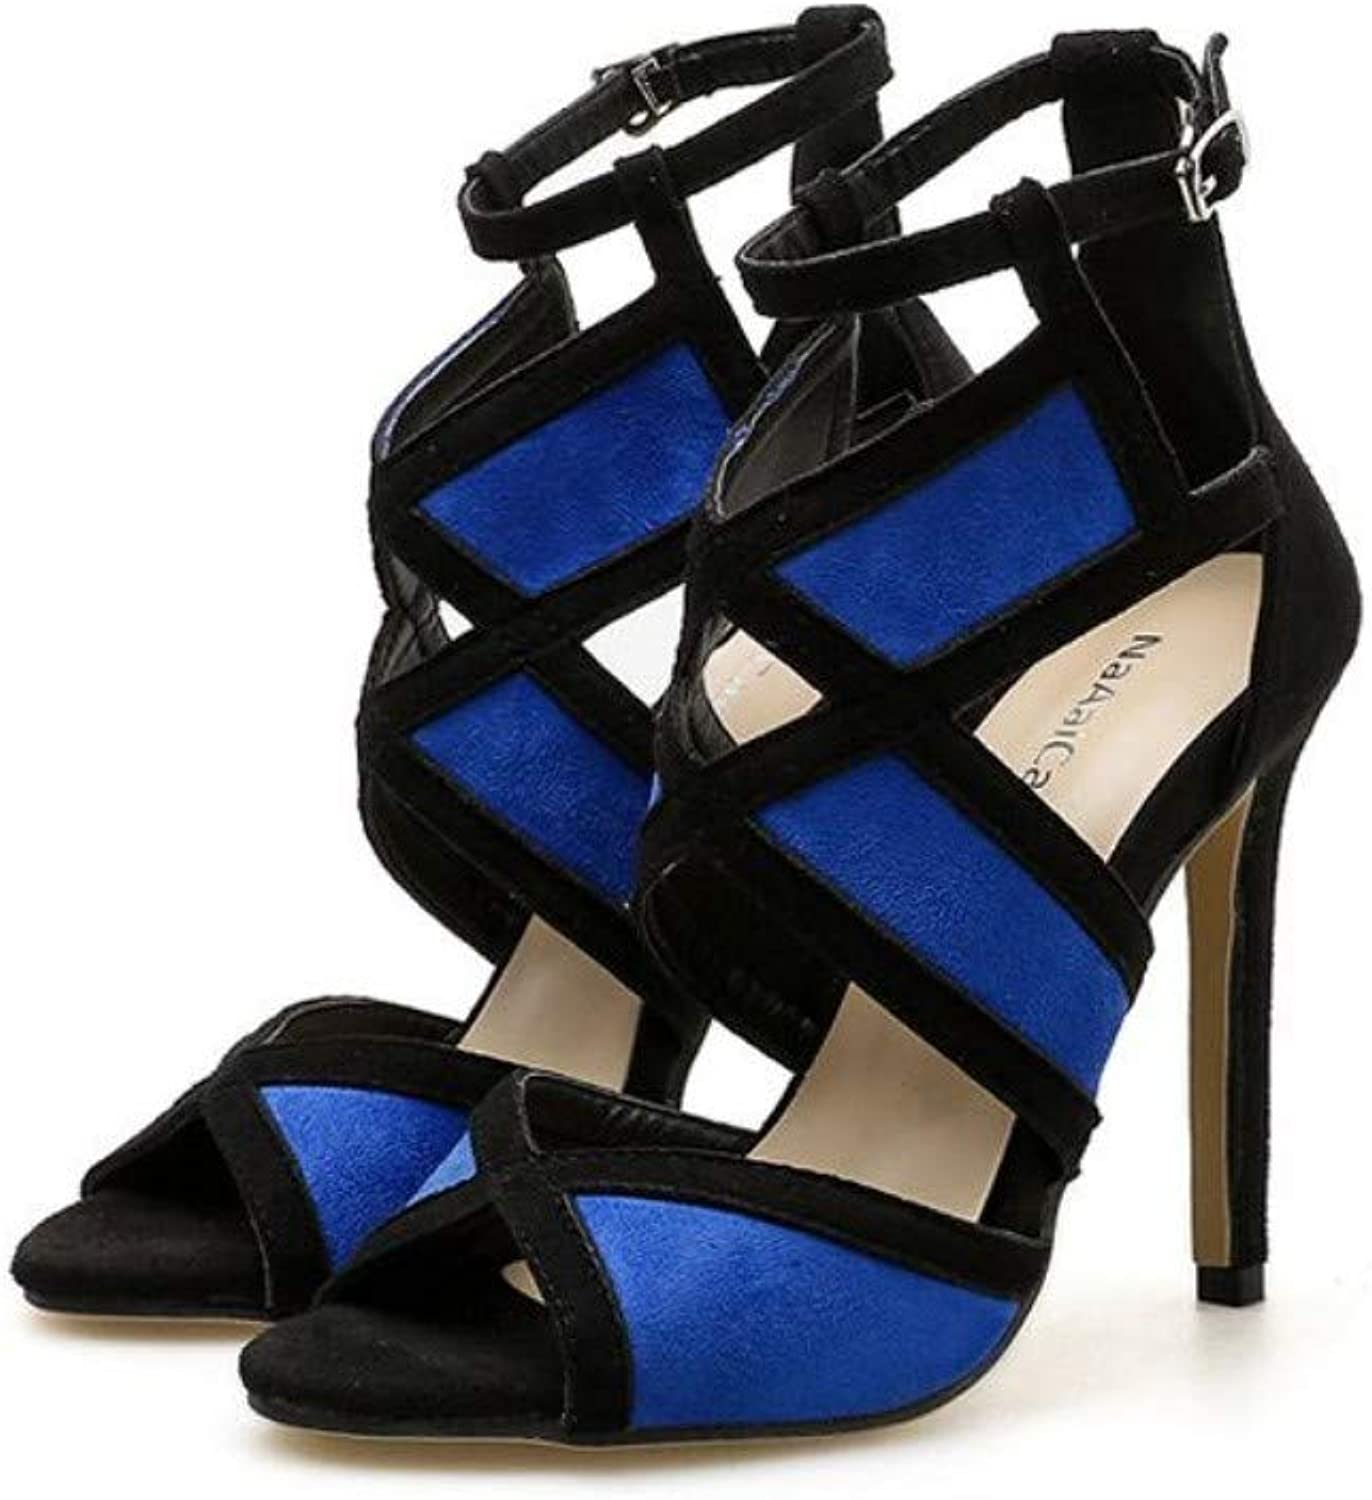 JQfashion Women's High-Heeled shoes Spring and Summer High-Heeled Sandals Sexy Fine-Heeled Suede Fishmouth shoes